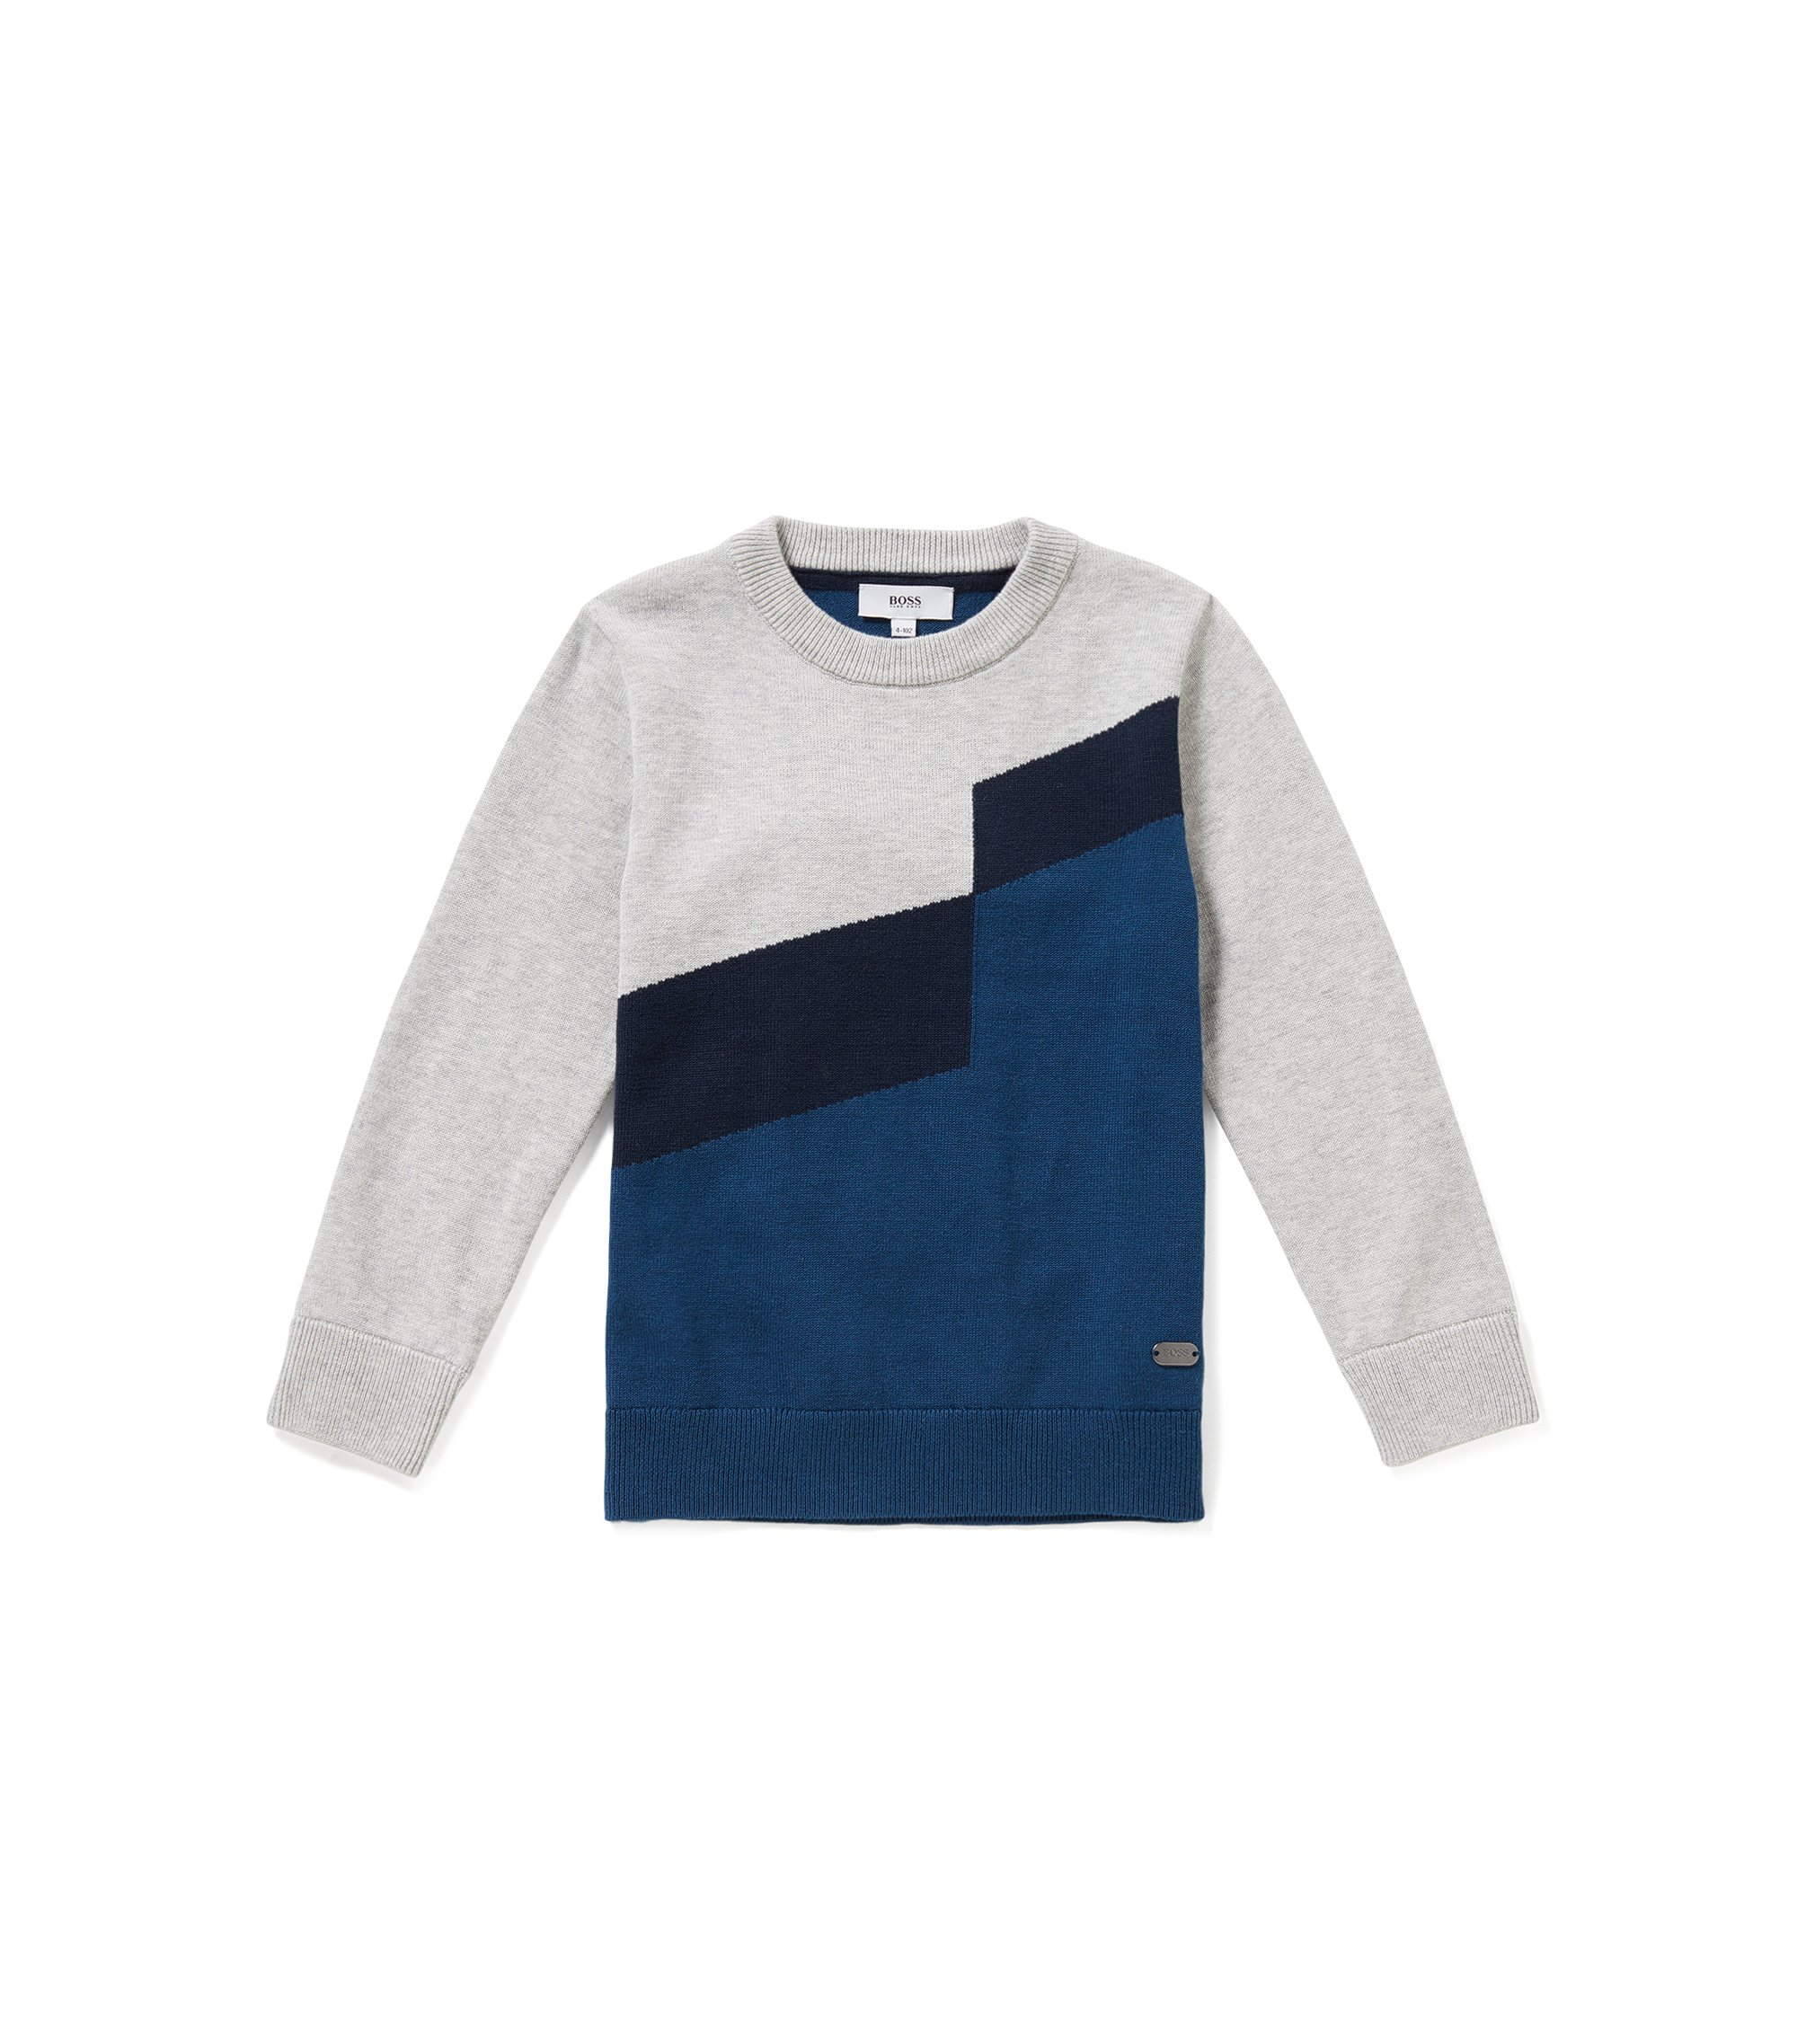 Kids Regular-Fit Pullover aus Baumwoll-Mix mit Wolle im Colour Block Design, Gemustert